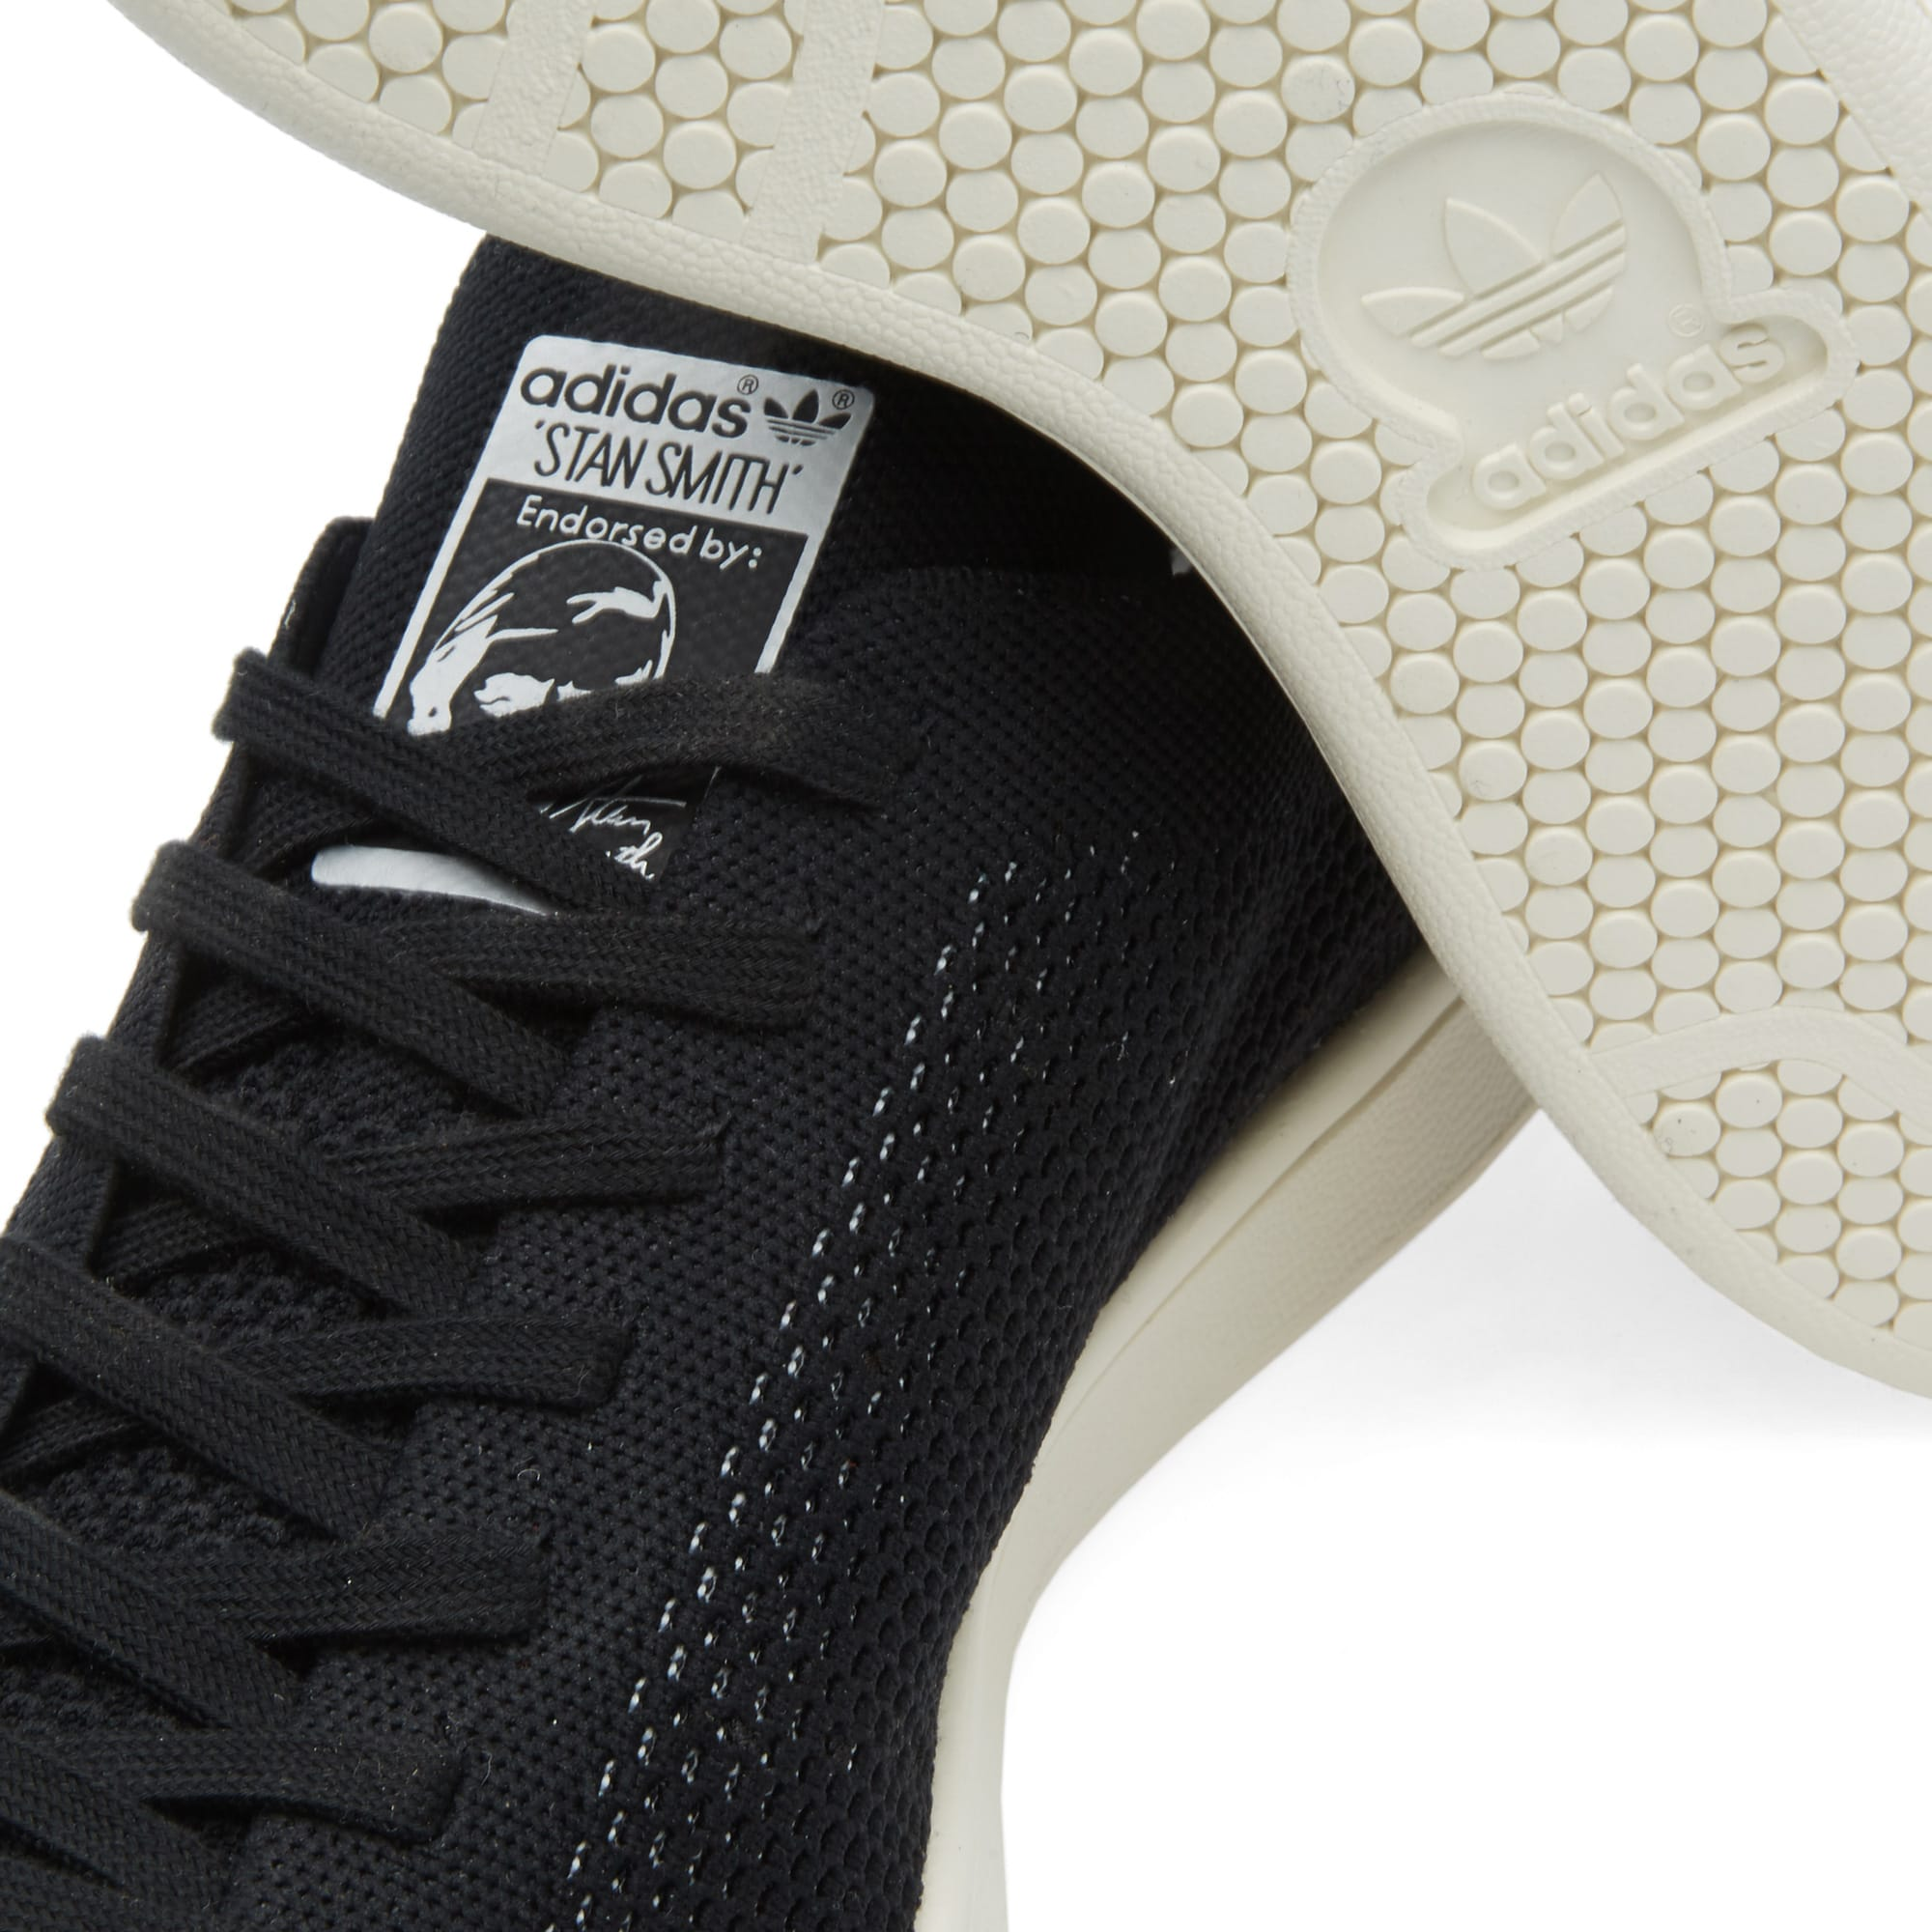 uk availability 8e527 ba790 Adidas Consortium Stan Smith Primeknit Reflective Black   END.